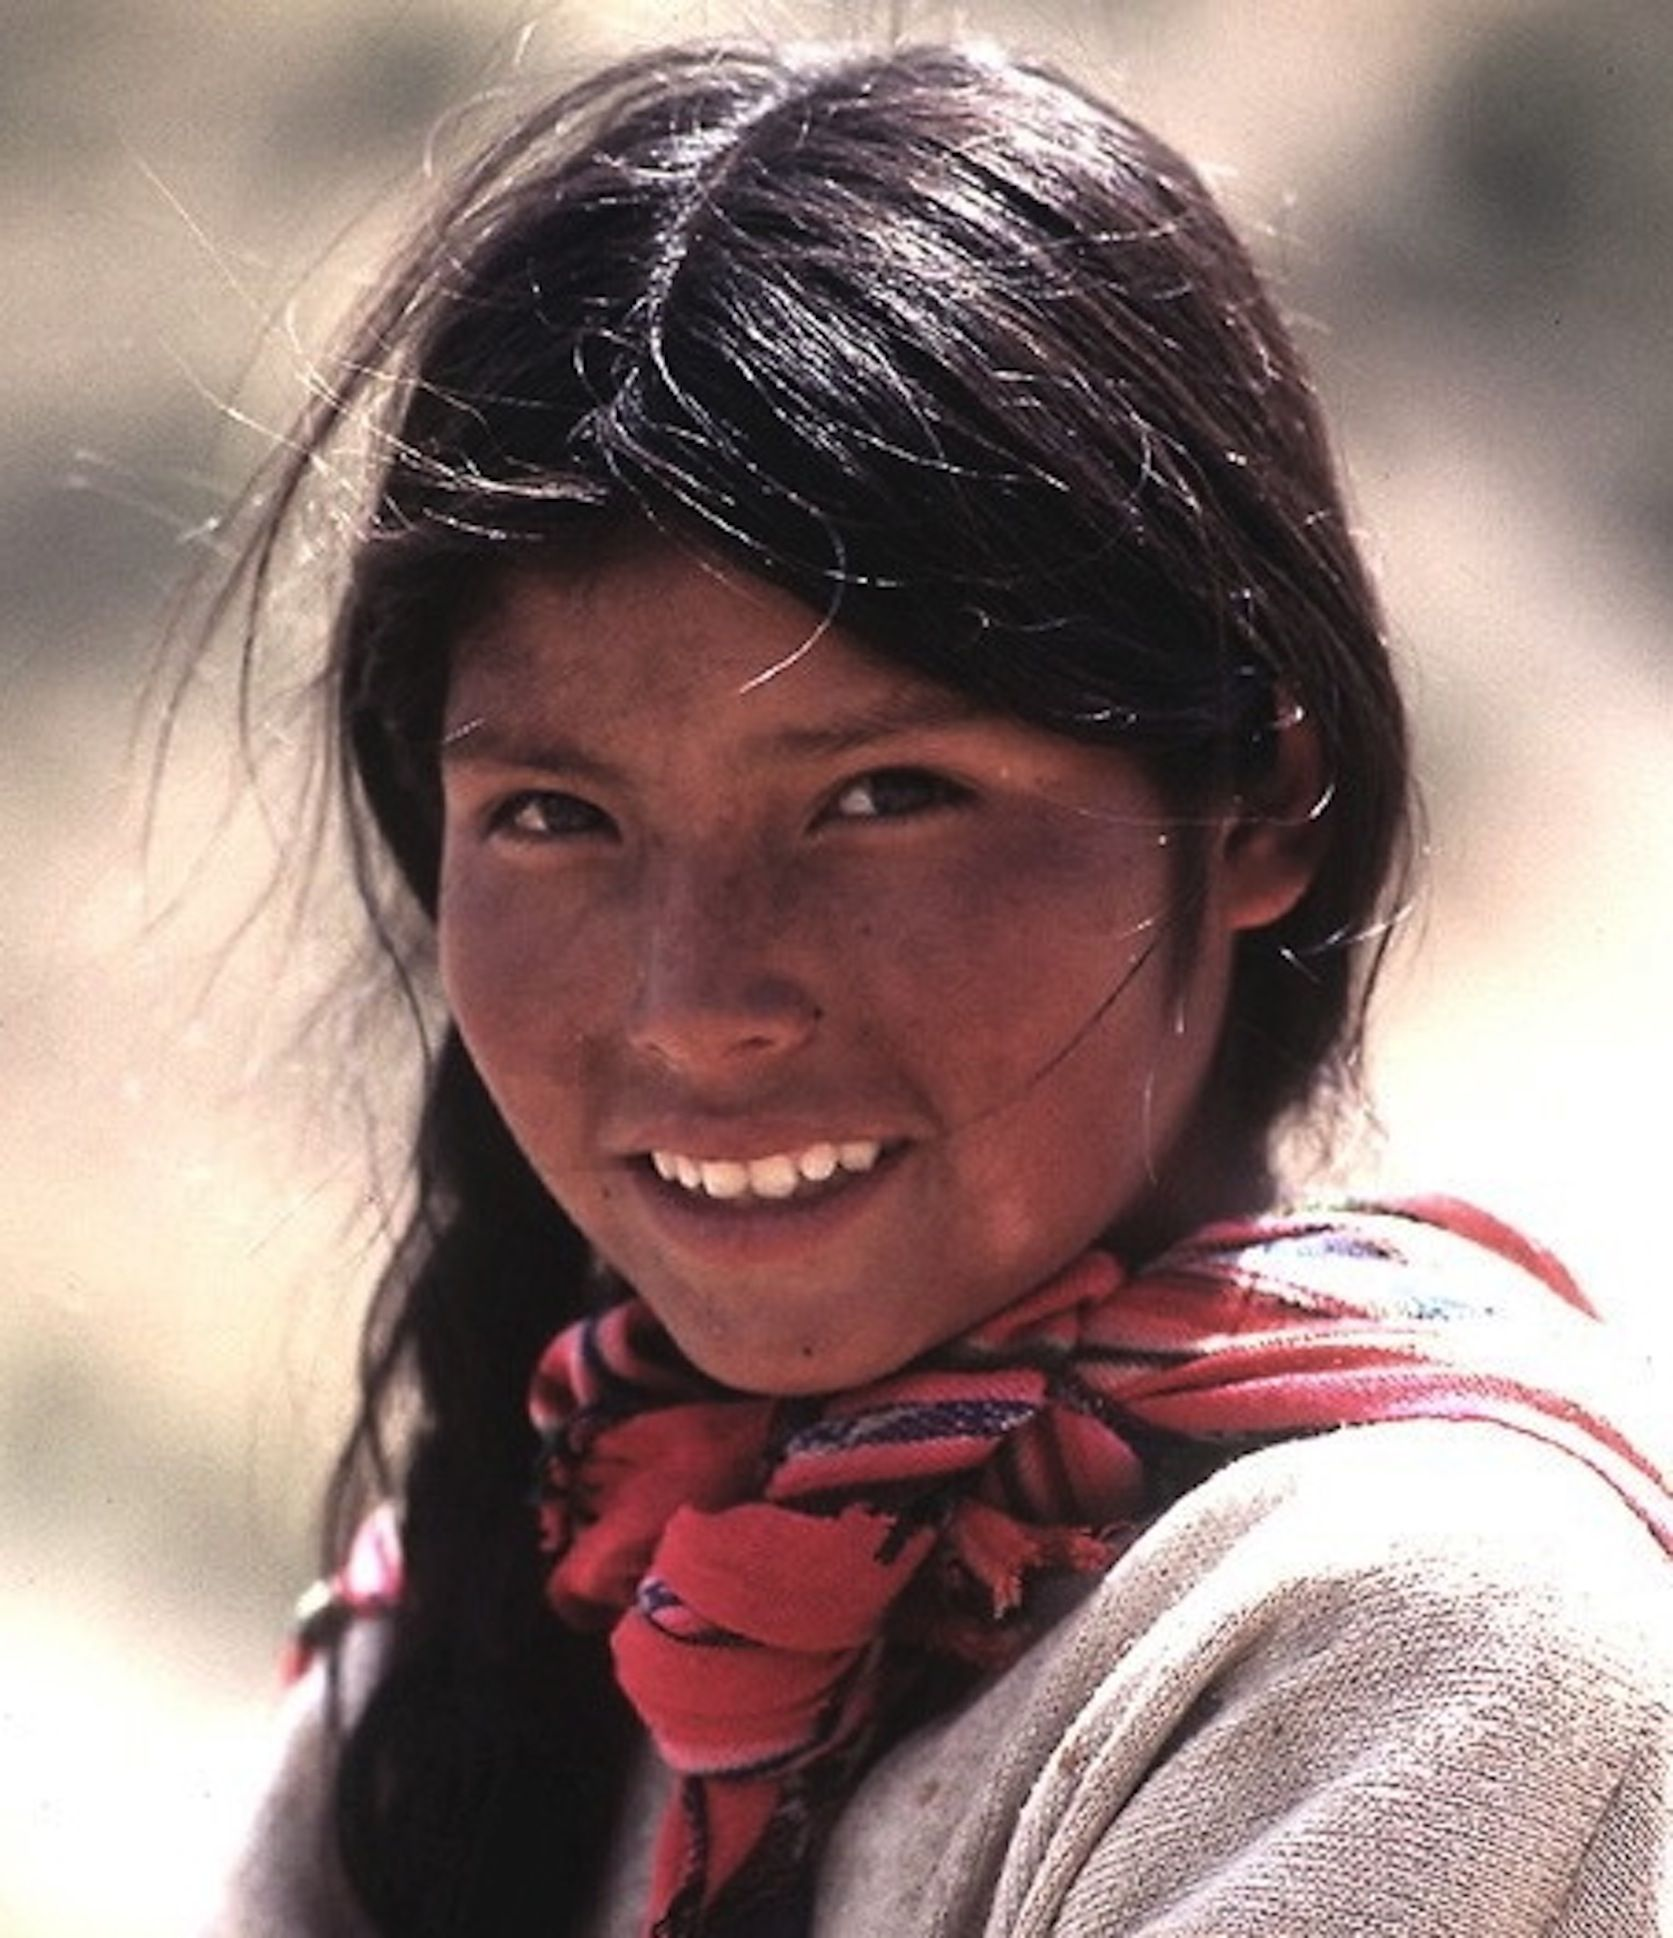 Young woman from Peru | Faces 2 - All stunning all